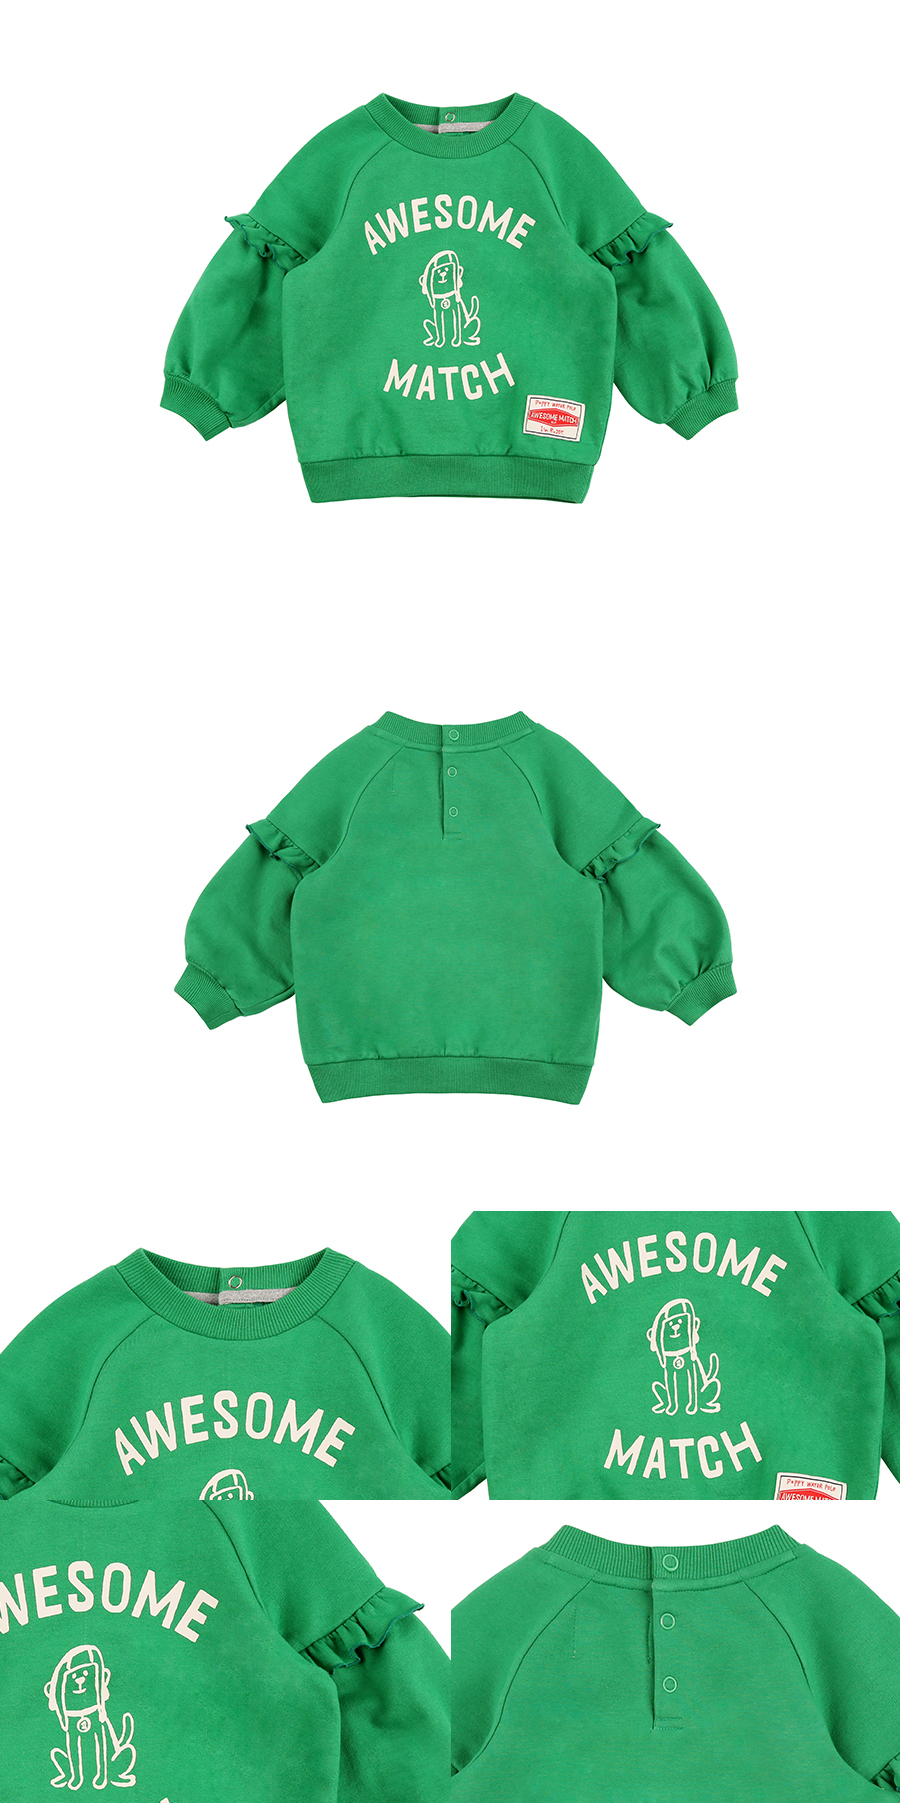 Awesome match baby ruffle sweatshirt 상세 이미지